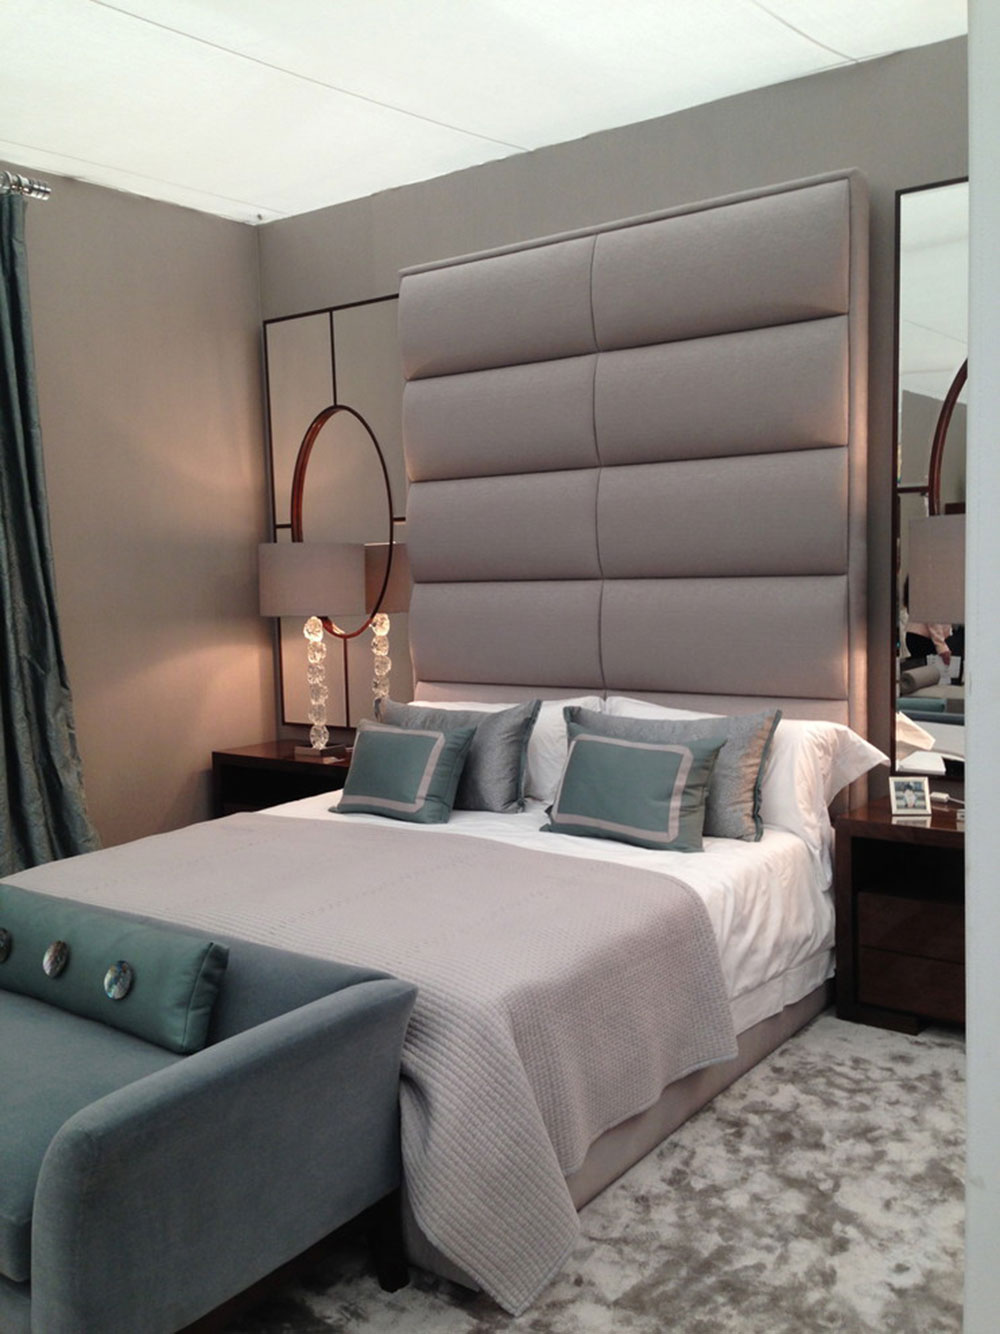 Great ideas for choosing a headboard for your bed1 Great ideas for choosing a headboard for your bed